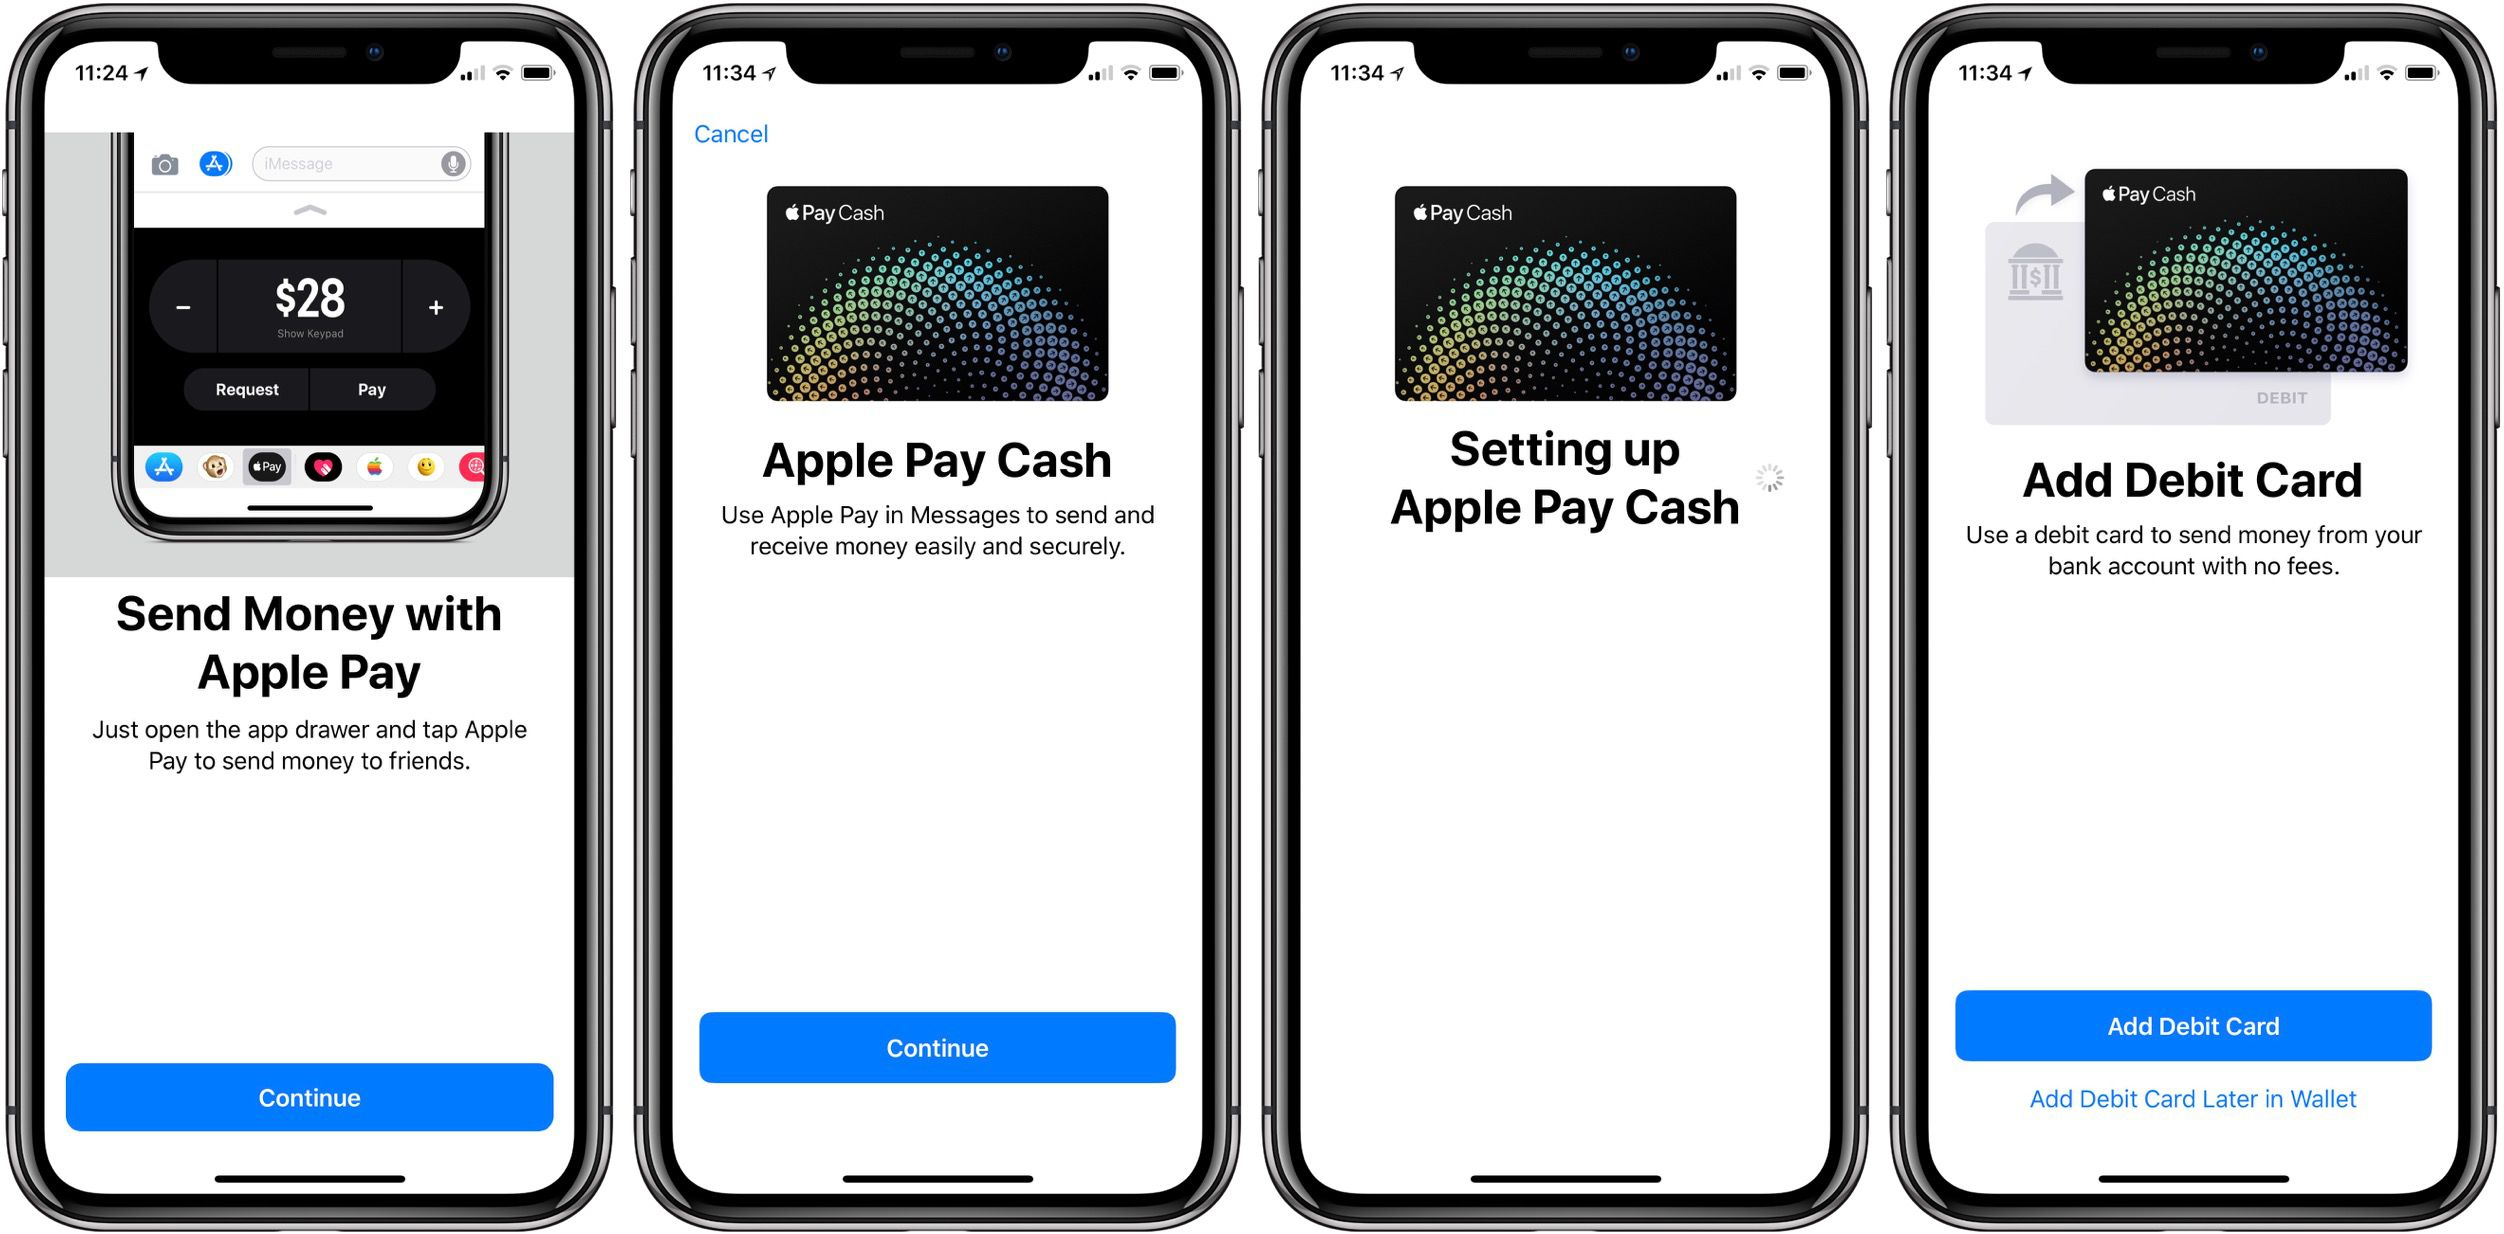 How to get apple pay cash to debit card